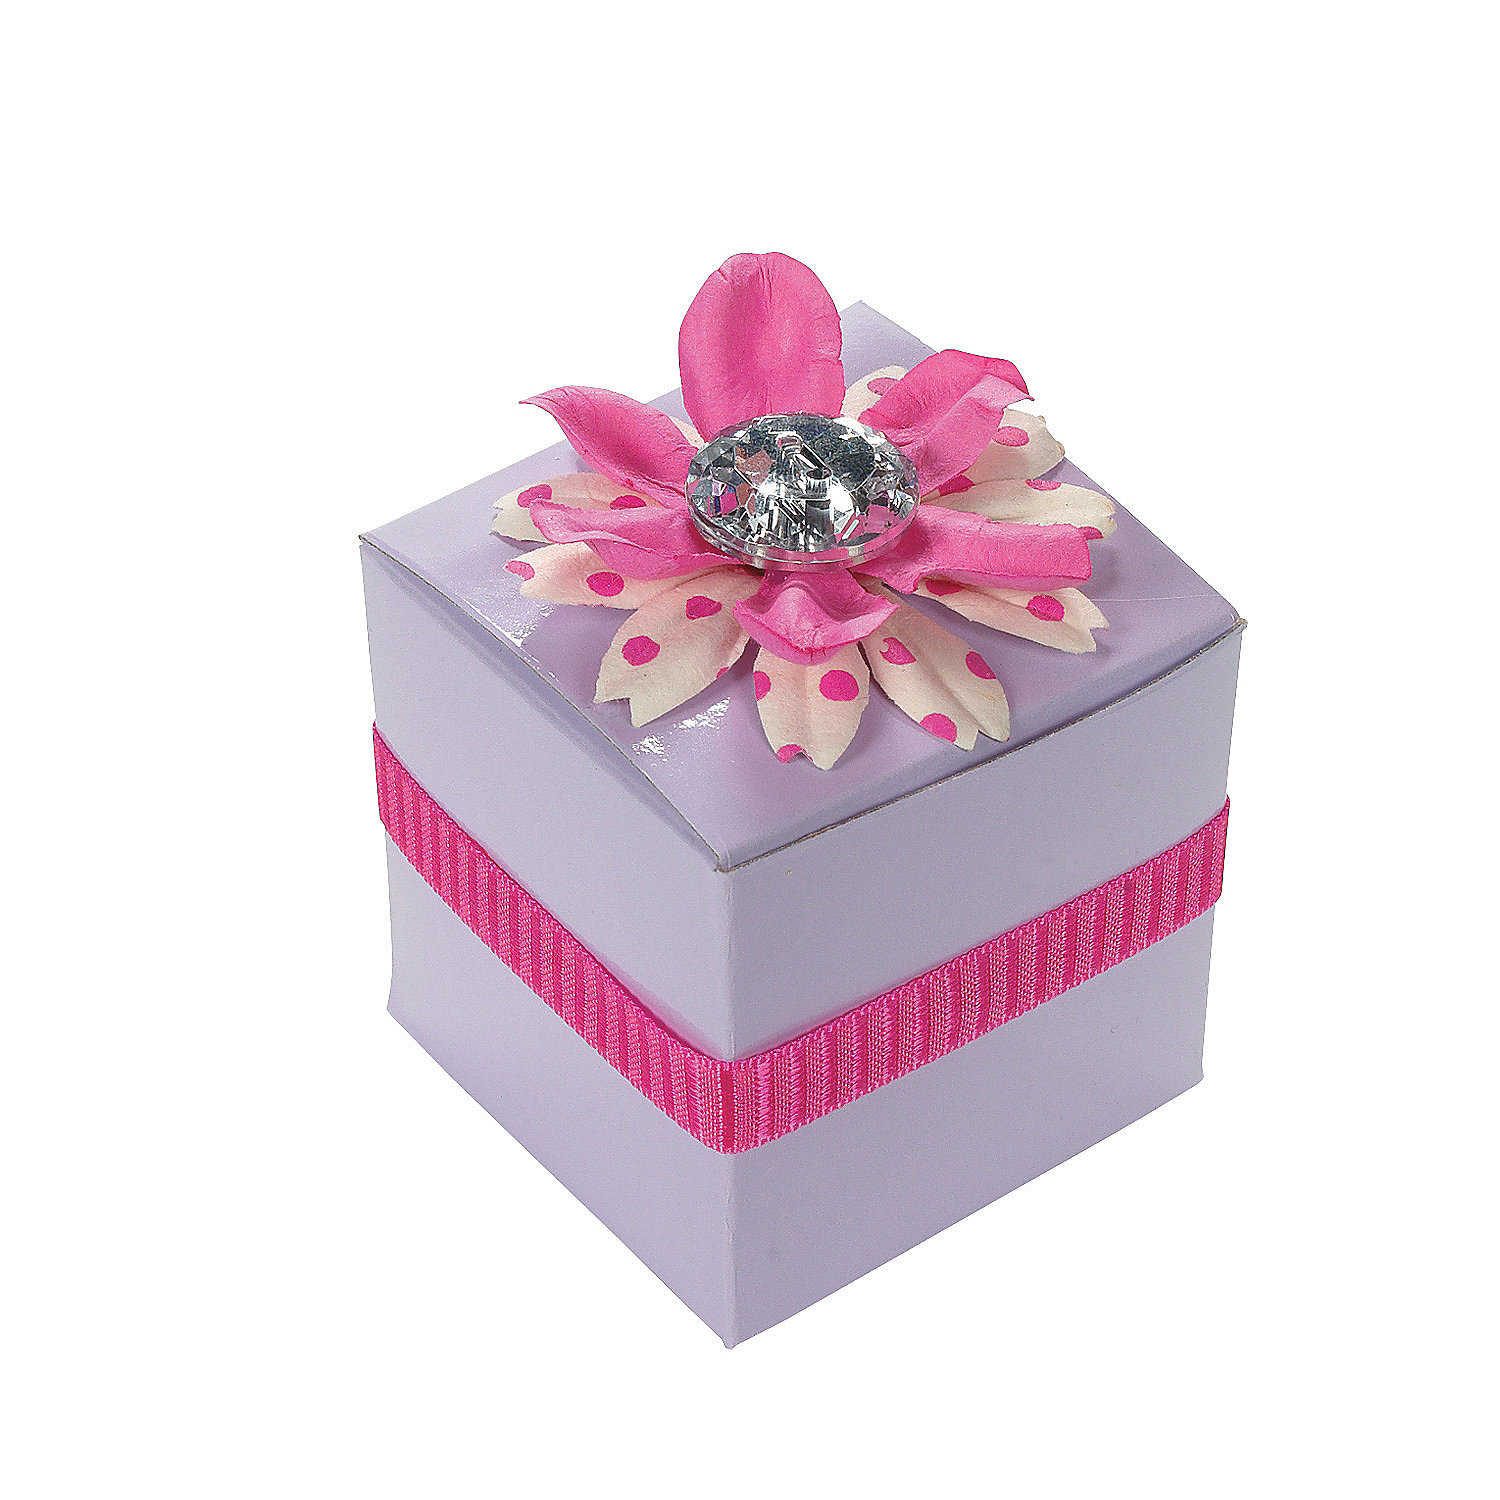 Favor Boxes Oriental Trading: Gingerbread house favor boxes oriental ...